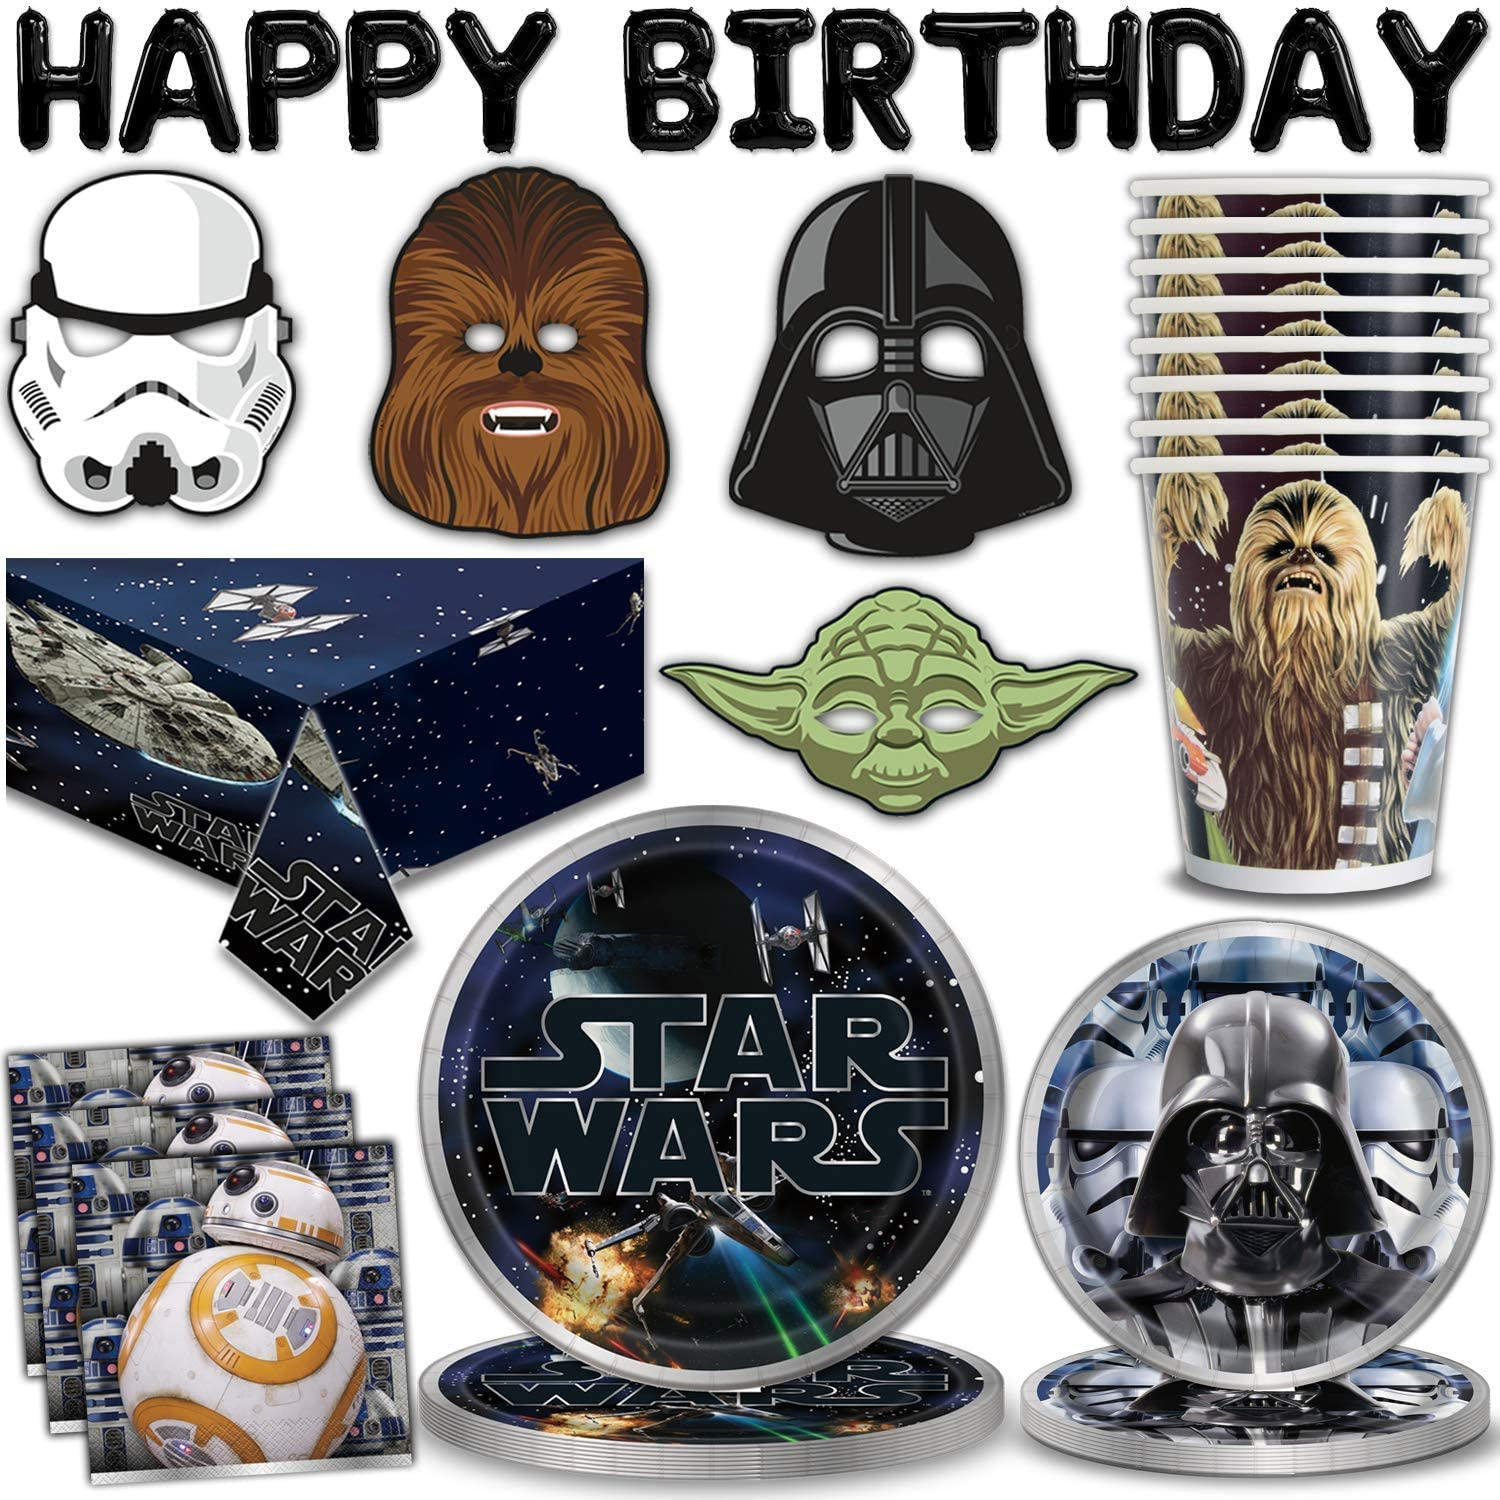 """Star Wars Party Supplies for 16 - Large Plates, Dessert Plates, Napkins, Masks, """"Happy Birthday"""" Letter Balloons, Table cover, Cups - Great Tableware Set w/ Darth Vader, Baby Yoda, Chewbacca & Stormtrooper"""